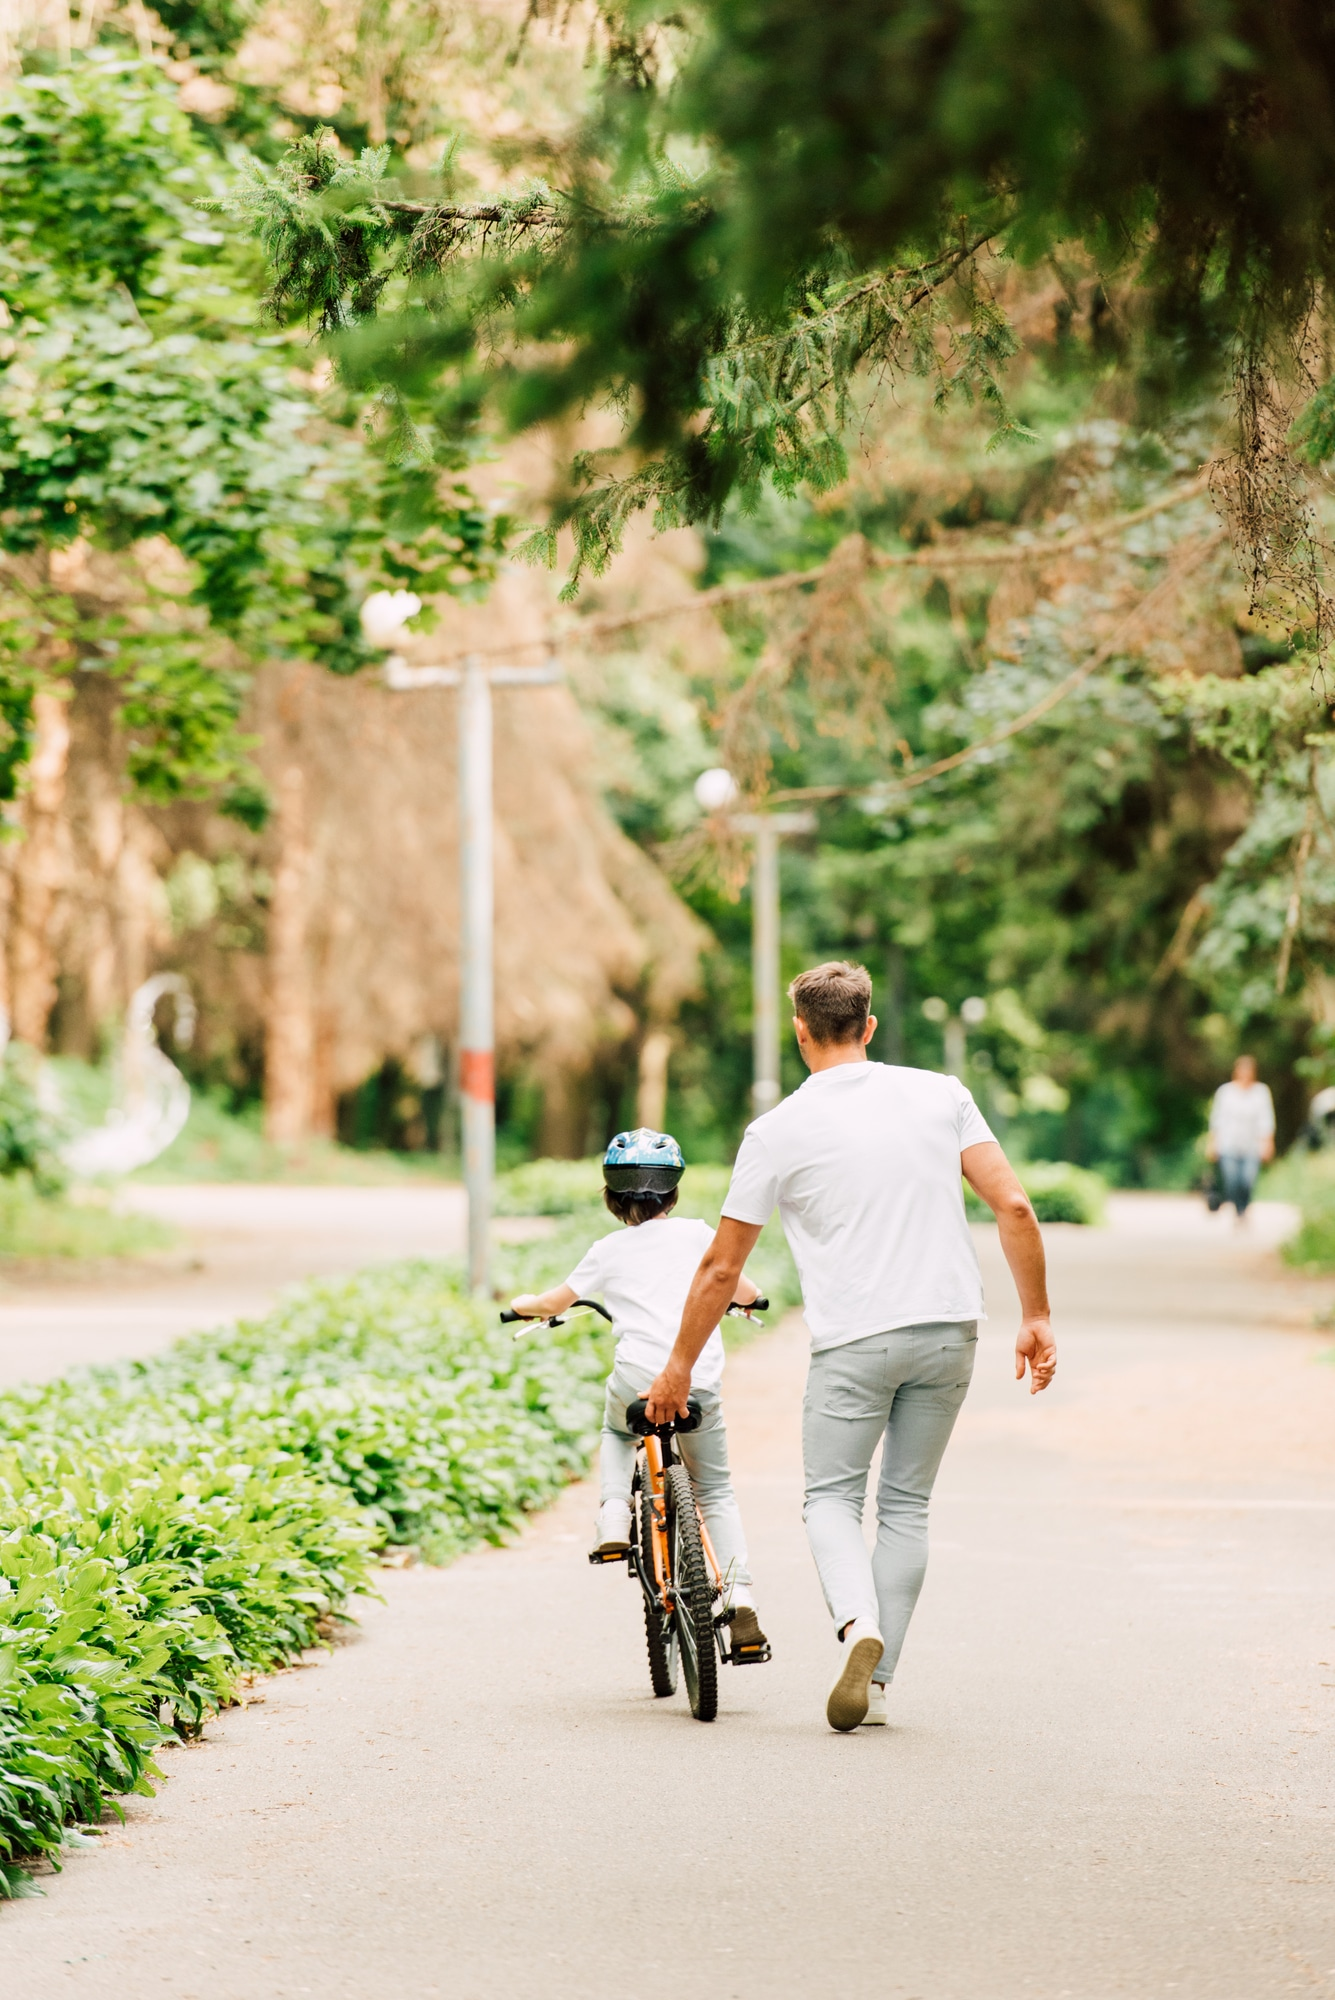 What if Your Child is in a Bicycle Accident? Here is What You Need to Do!